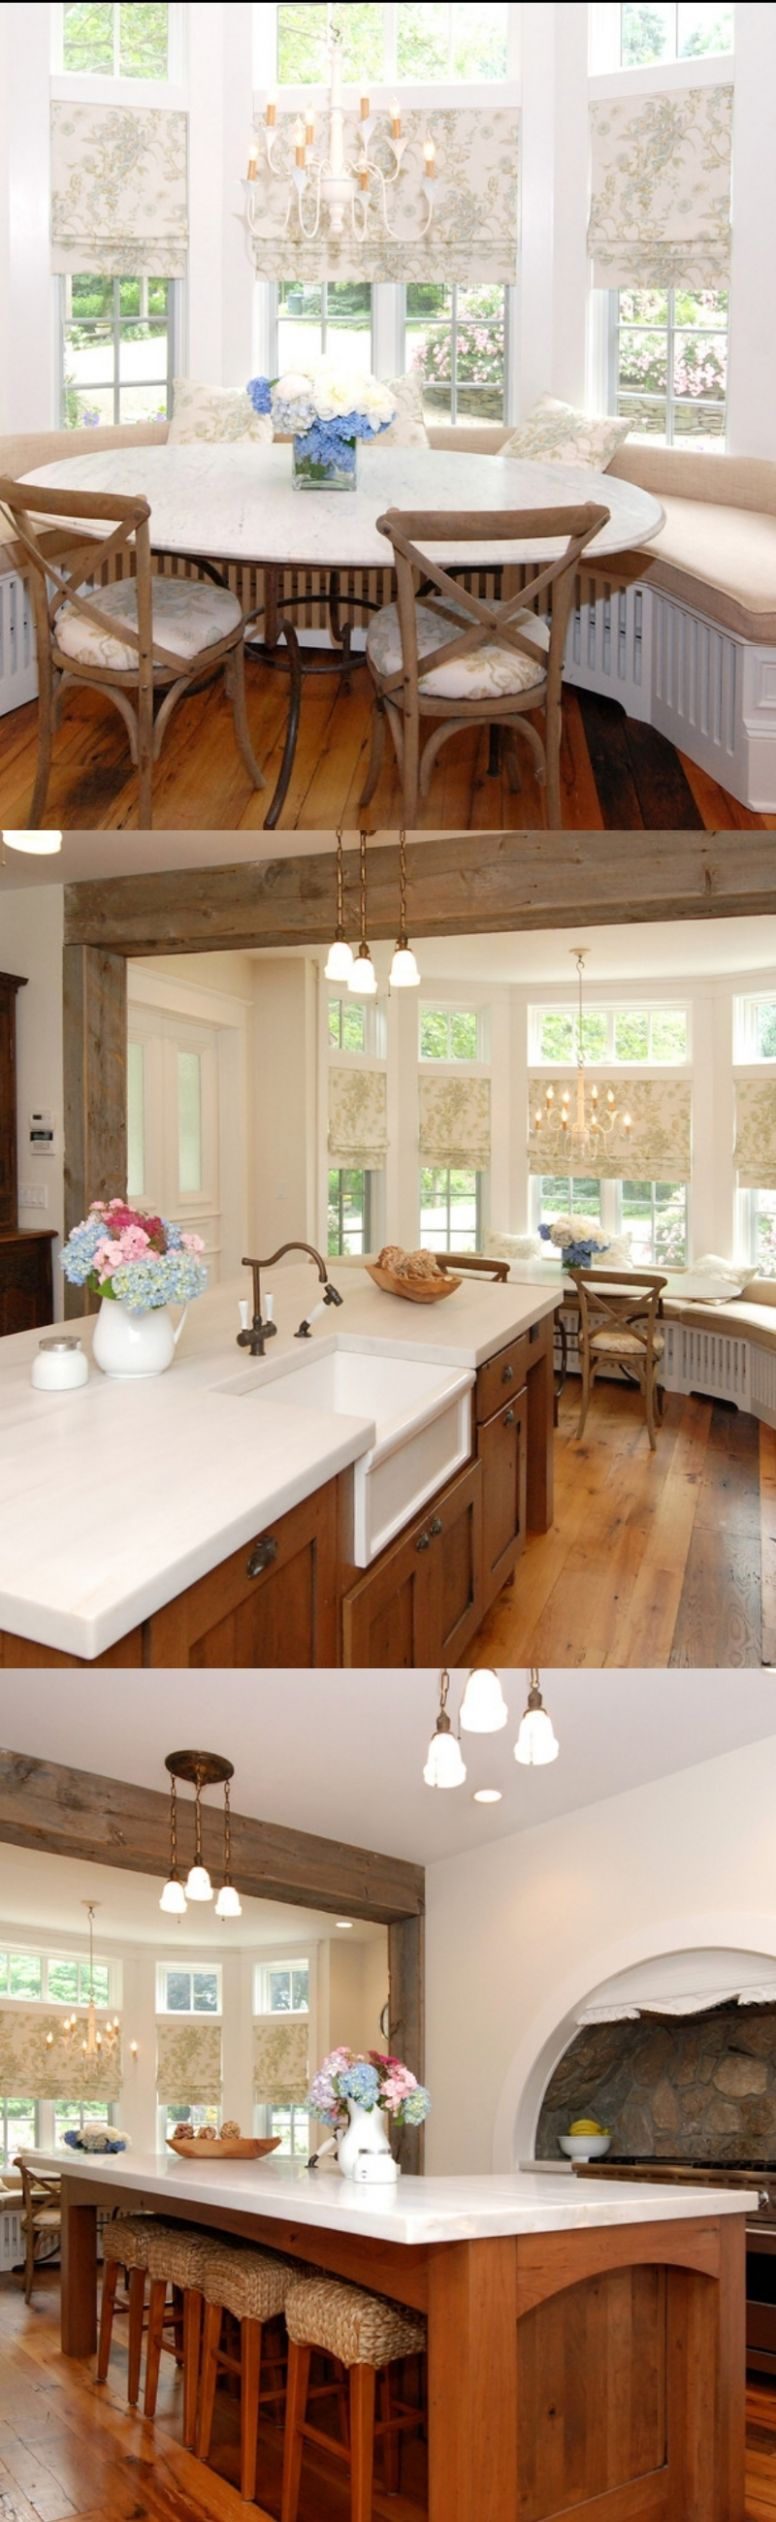 10+ Kitchen Bay Window Ideas (Type of Window & How to Decorate ..